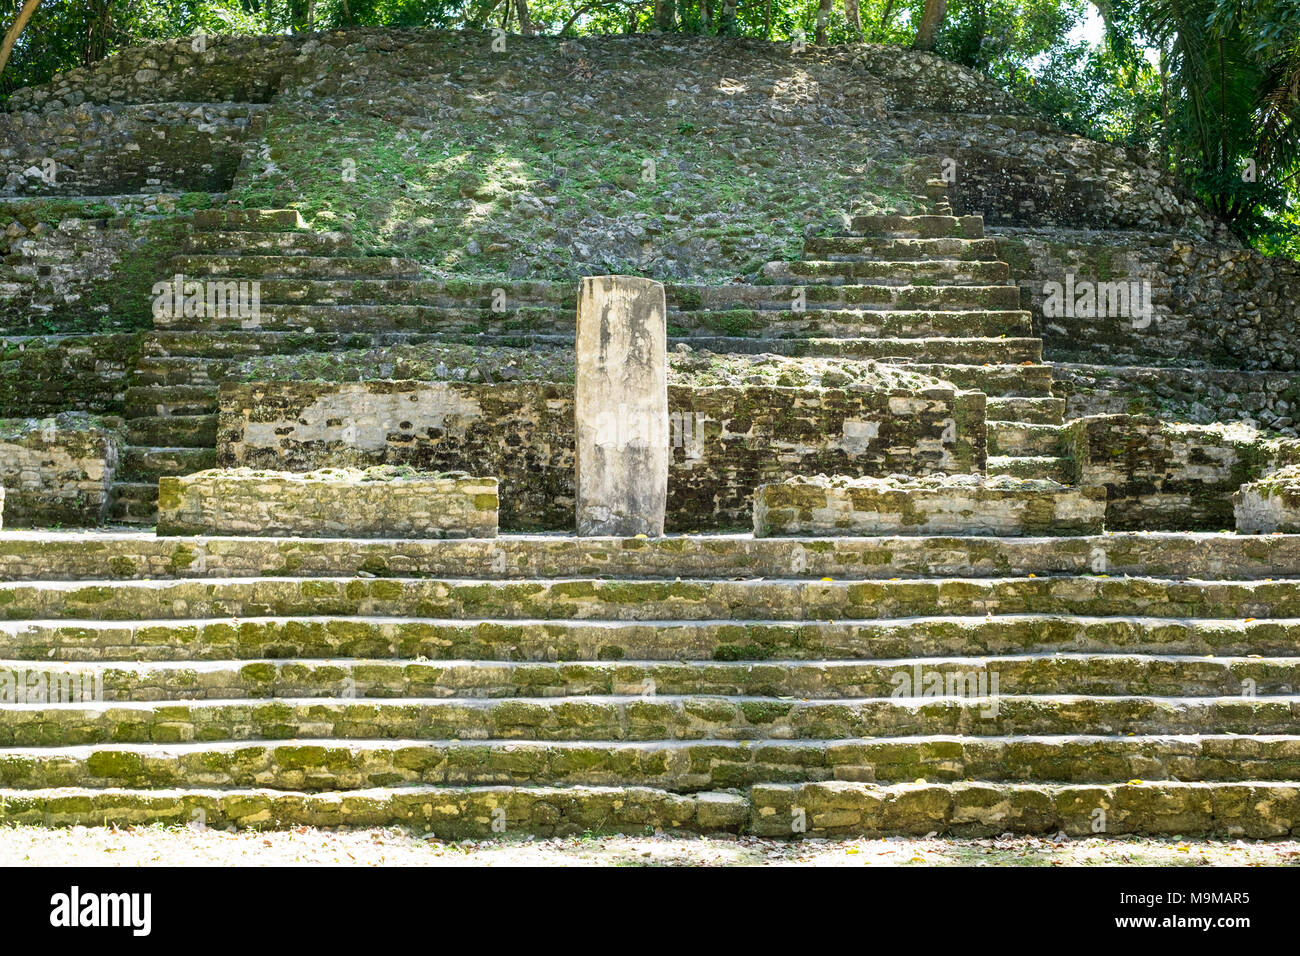 Ancient Mayan ruins and temples in the archeological site of Lamanai, Belize, Central America - Stock Image